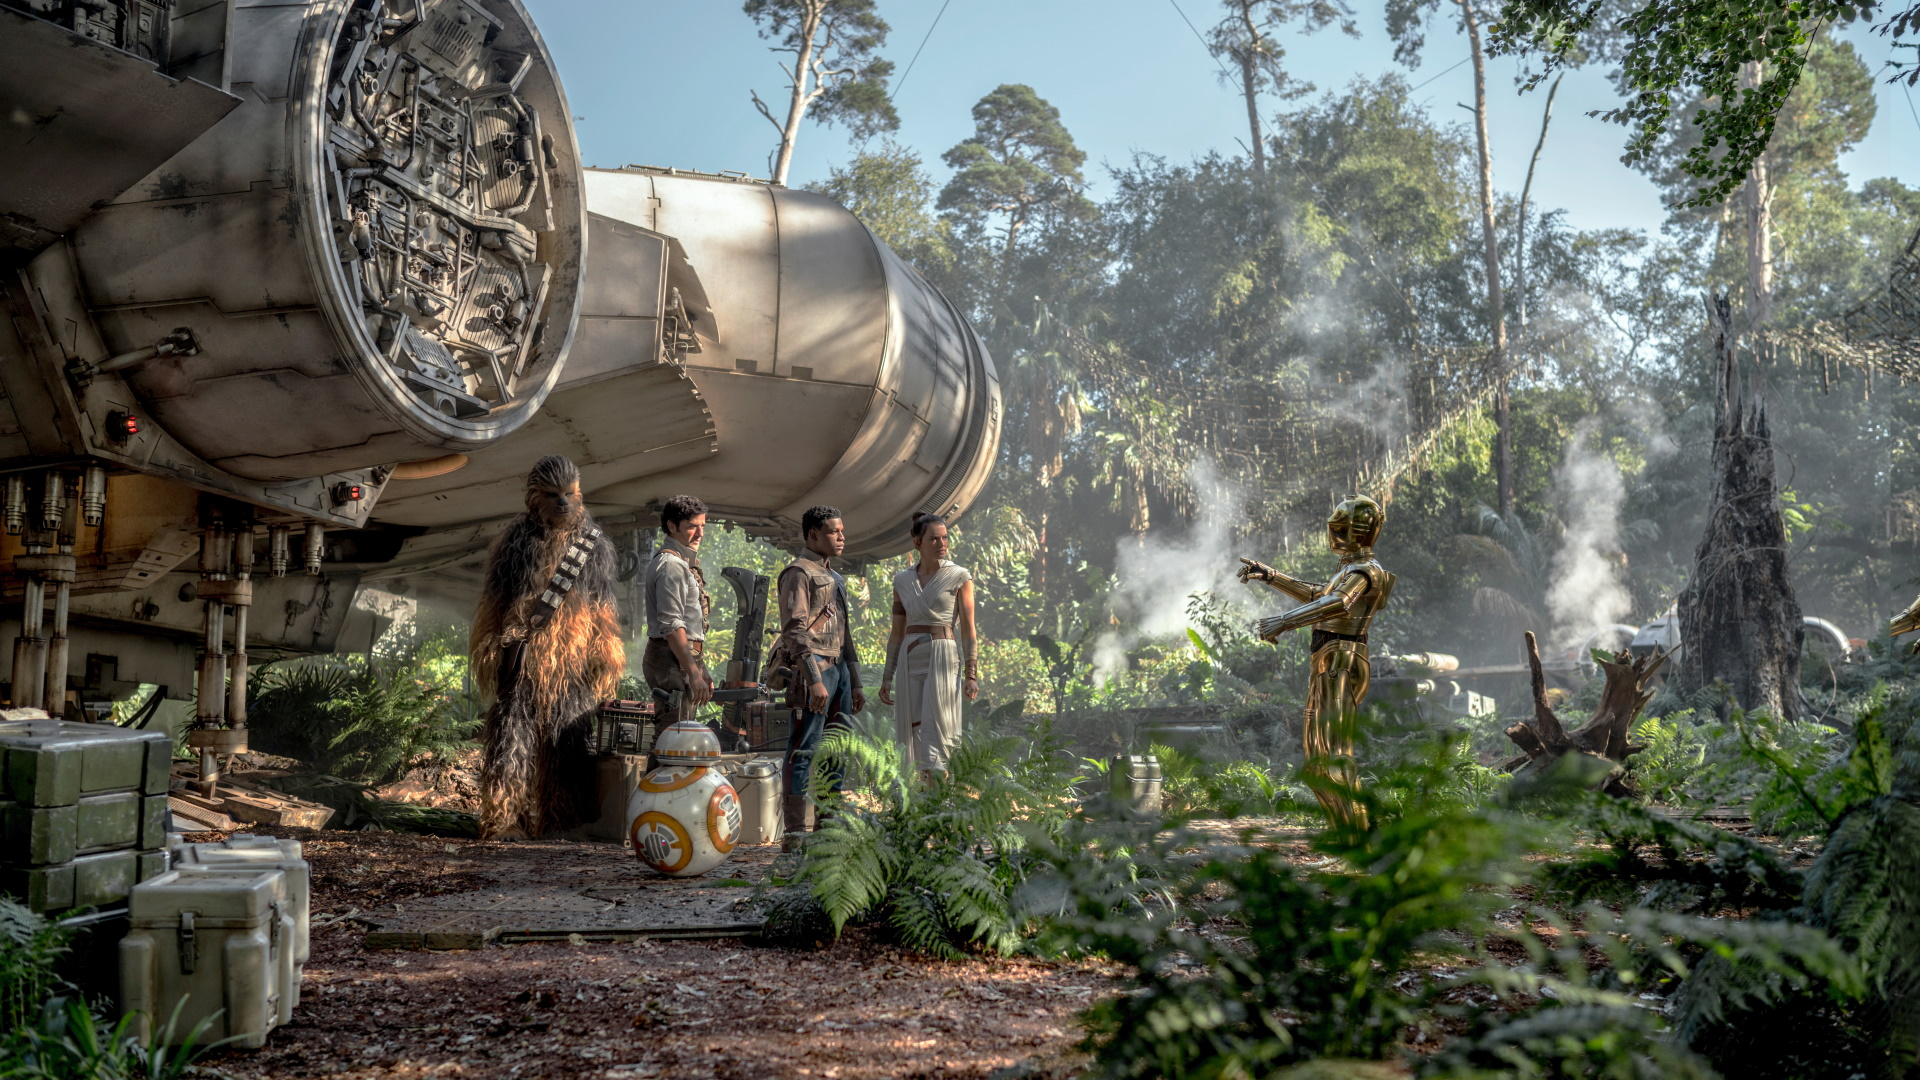 Chewbacca (Joonas Suotamo), Poe (Oscar Isaac), Finn (John Boyega), Rey (Daisy Ridley) and C-3PO (Anthony Daniels) in STAR WARS: THE RISE OF SKYWALKER.